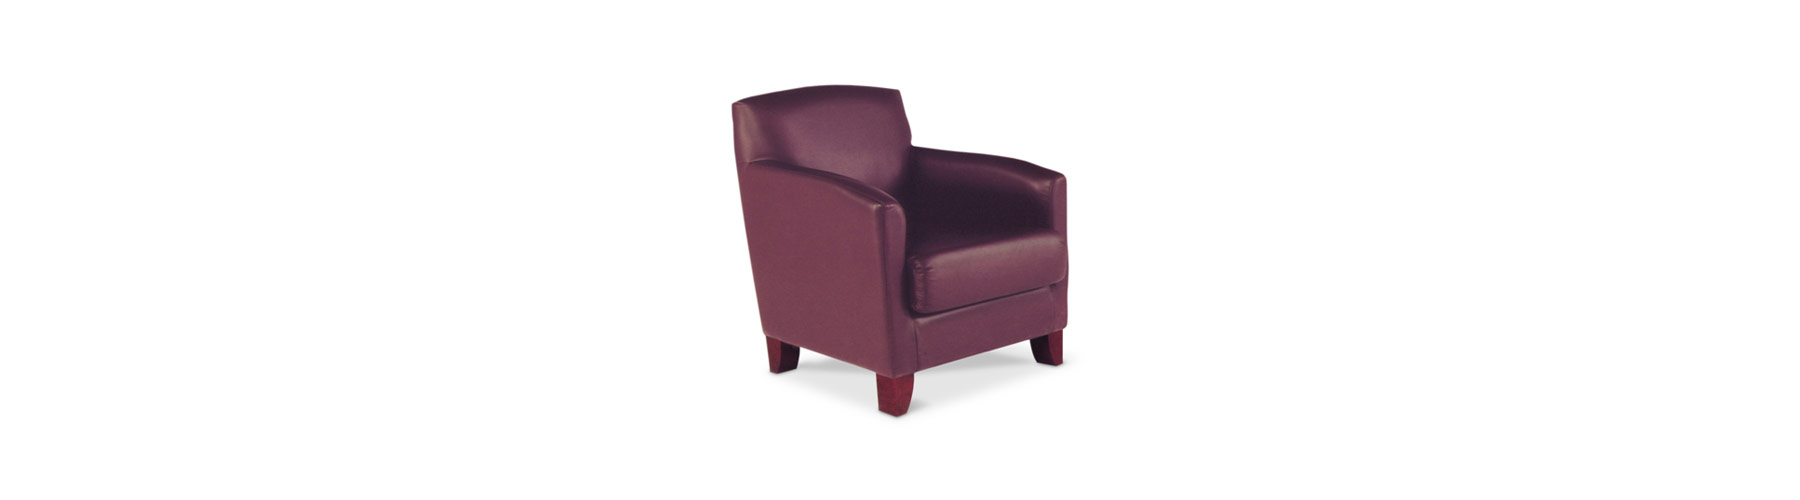 Florence - Fauteuil William